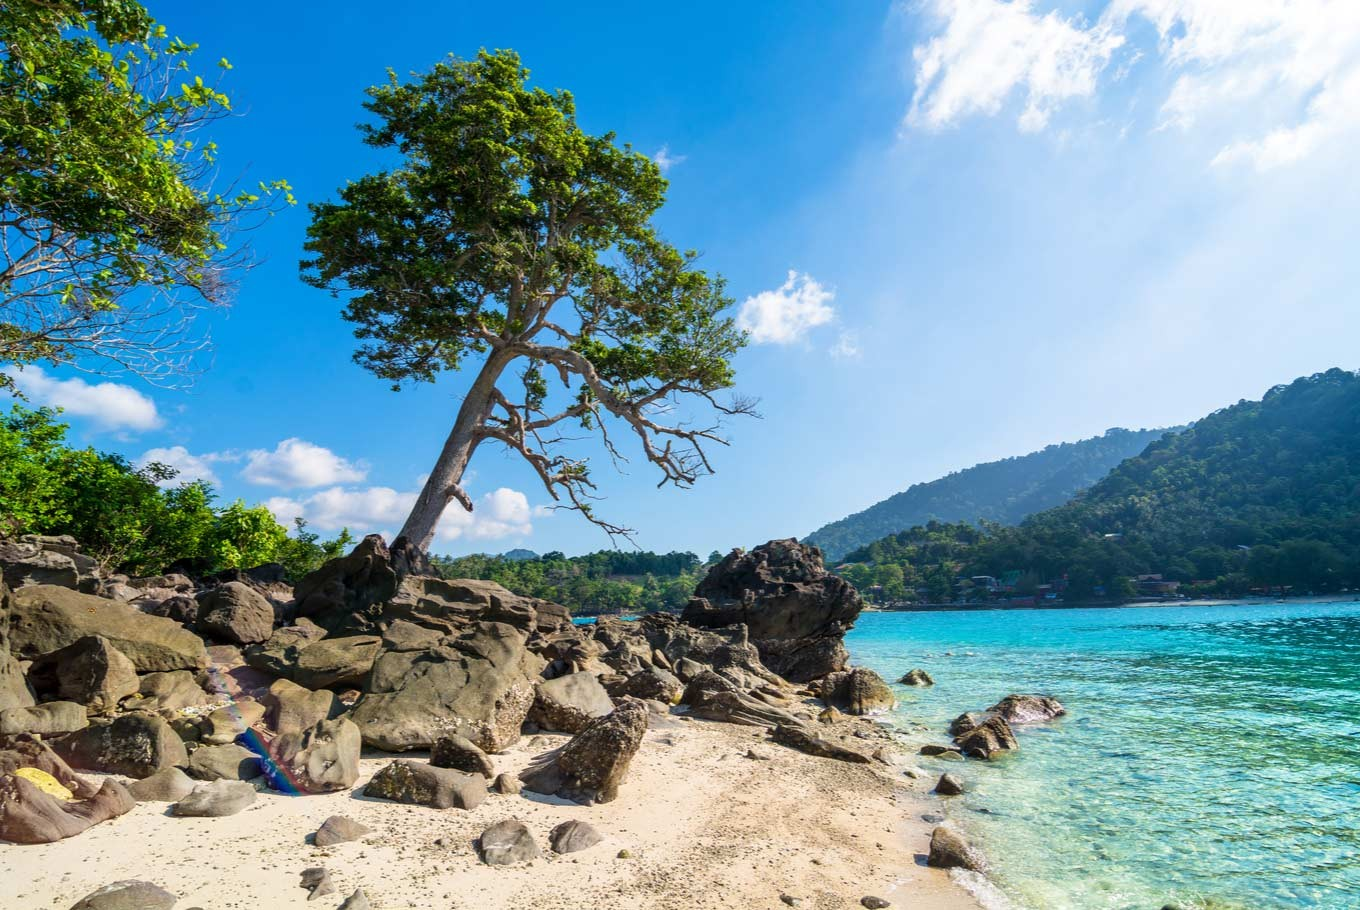 Sabang, Aceh has a lot to offer for marine tourism